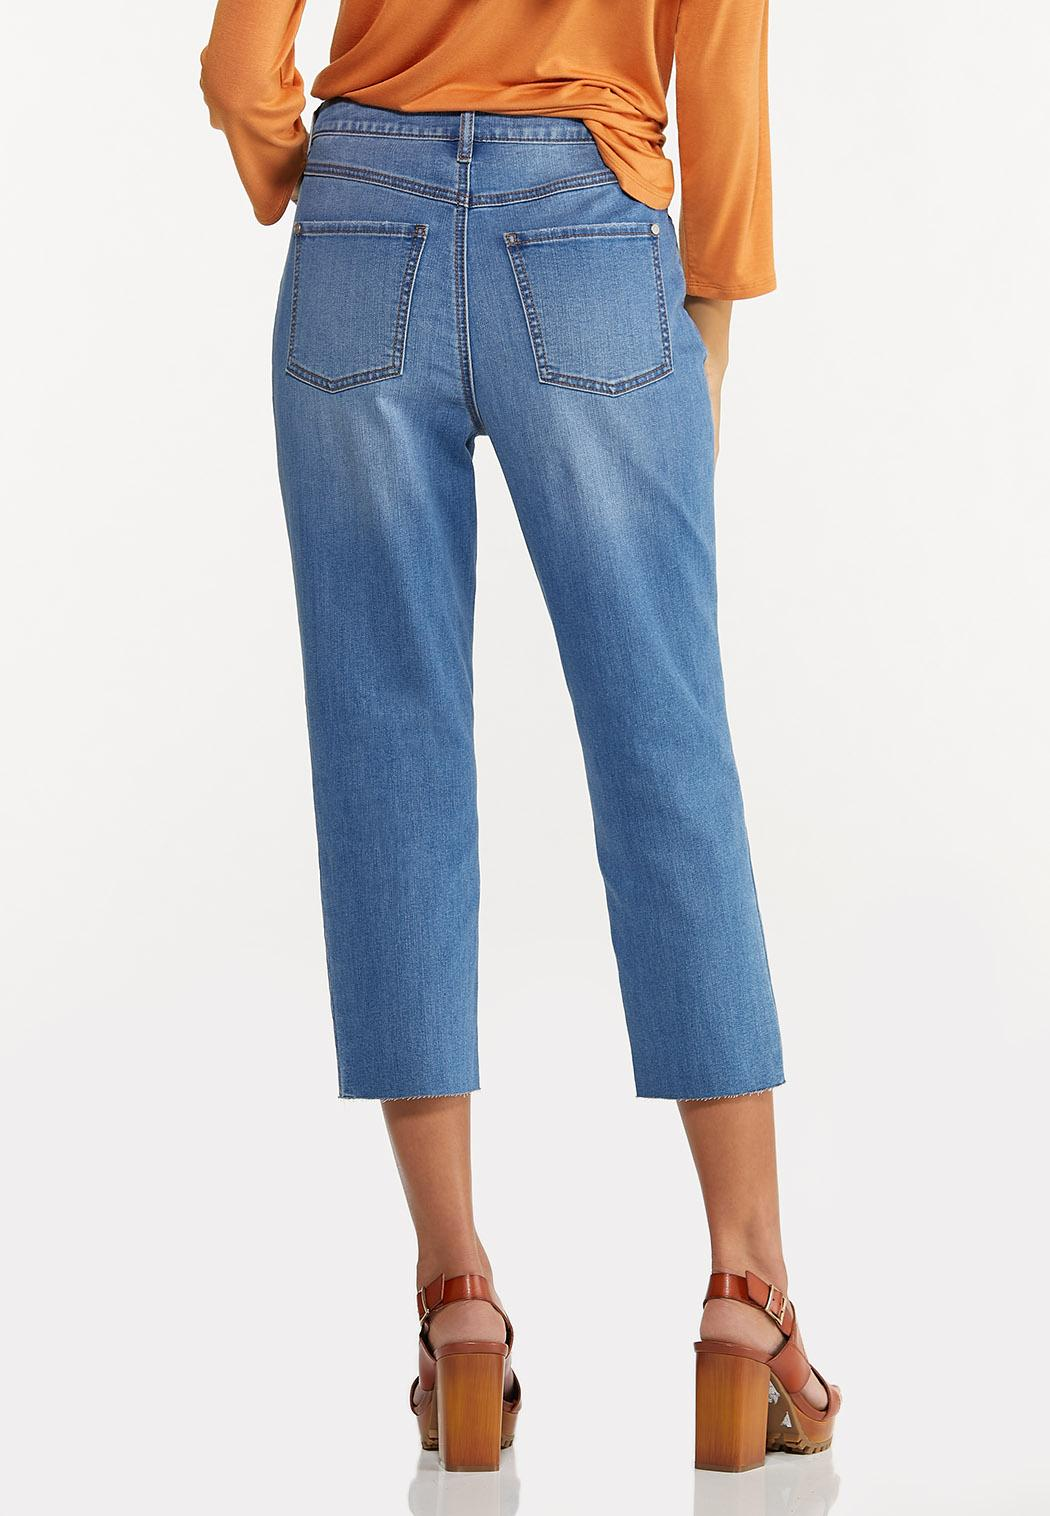 Cropped Patchwork Jeans (Item #44629532)